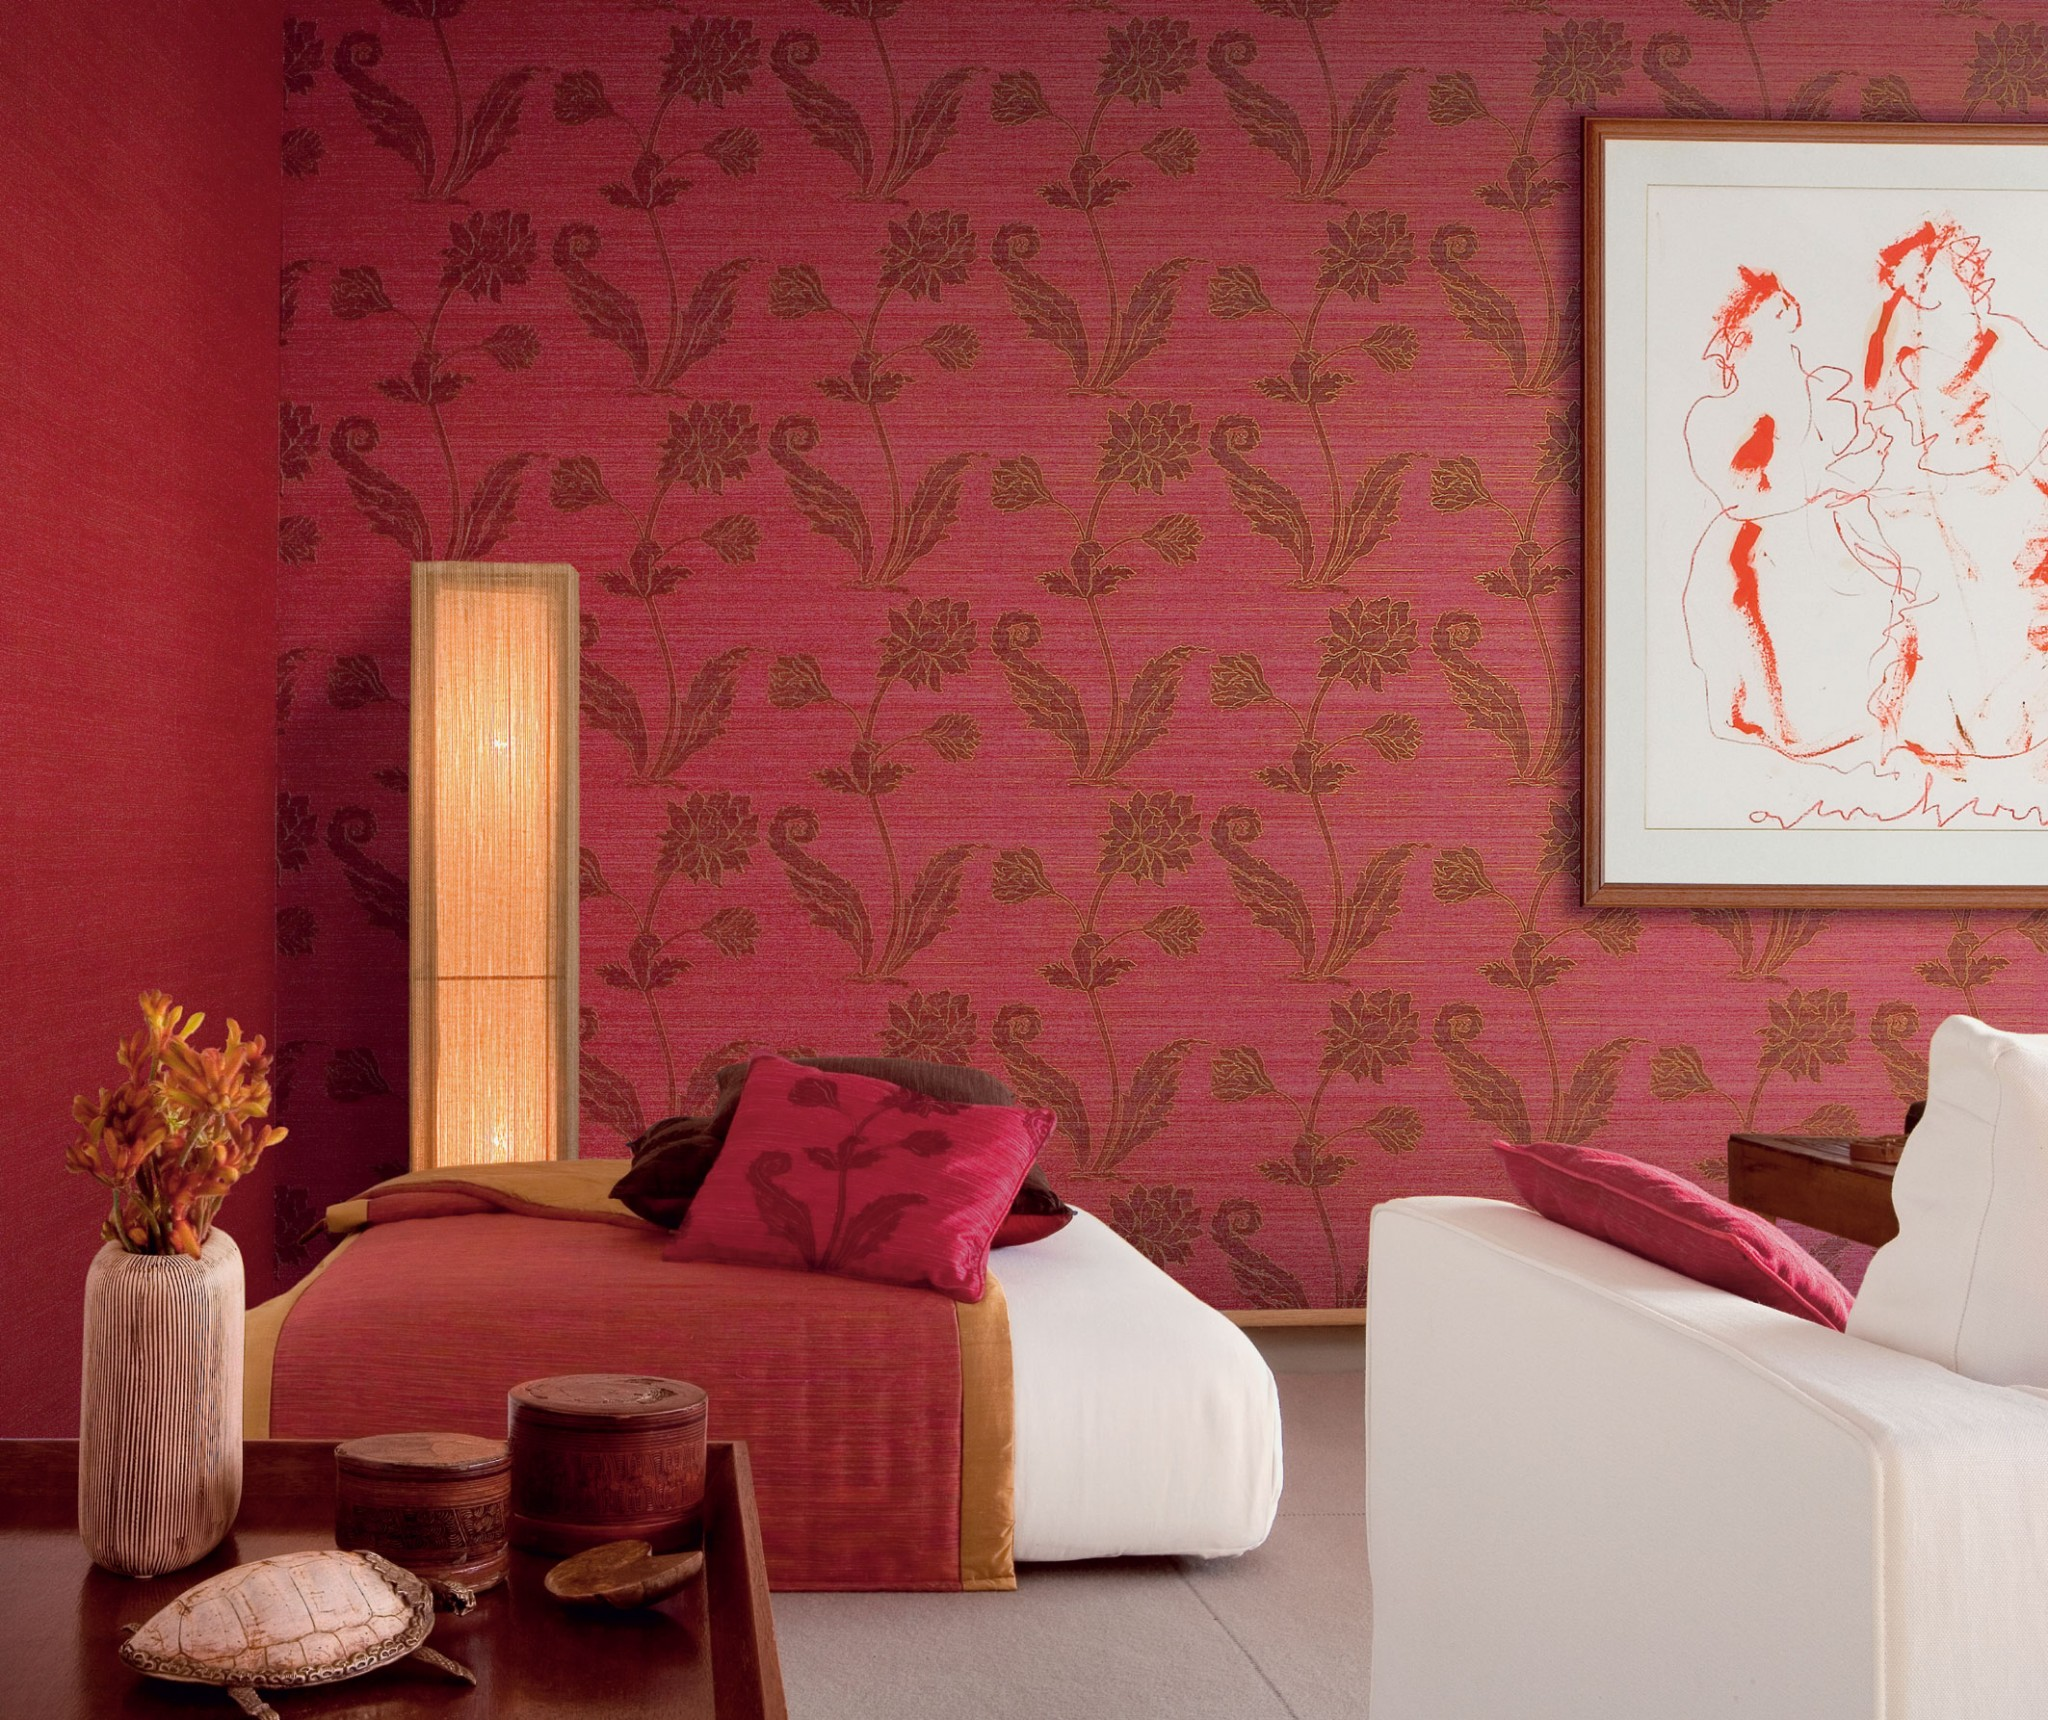 Most Widespread Types of Wallpaper. Vynil wallpaper for red bright interior